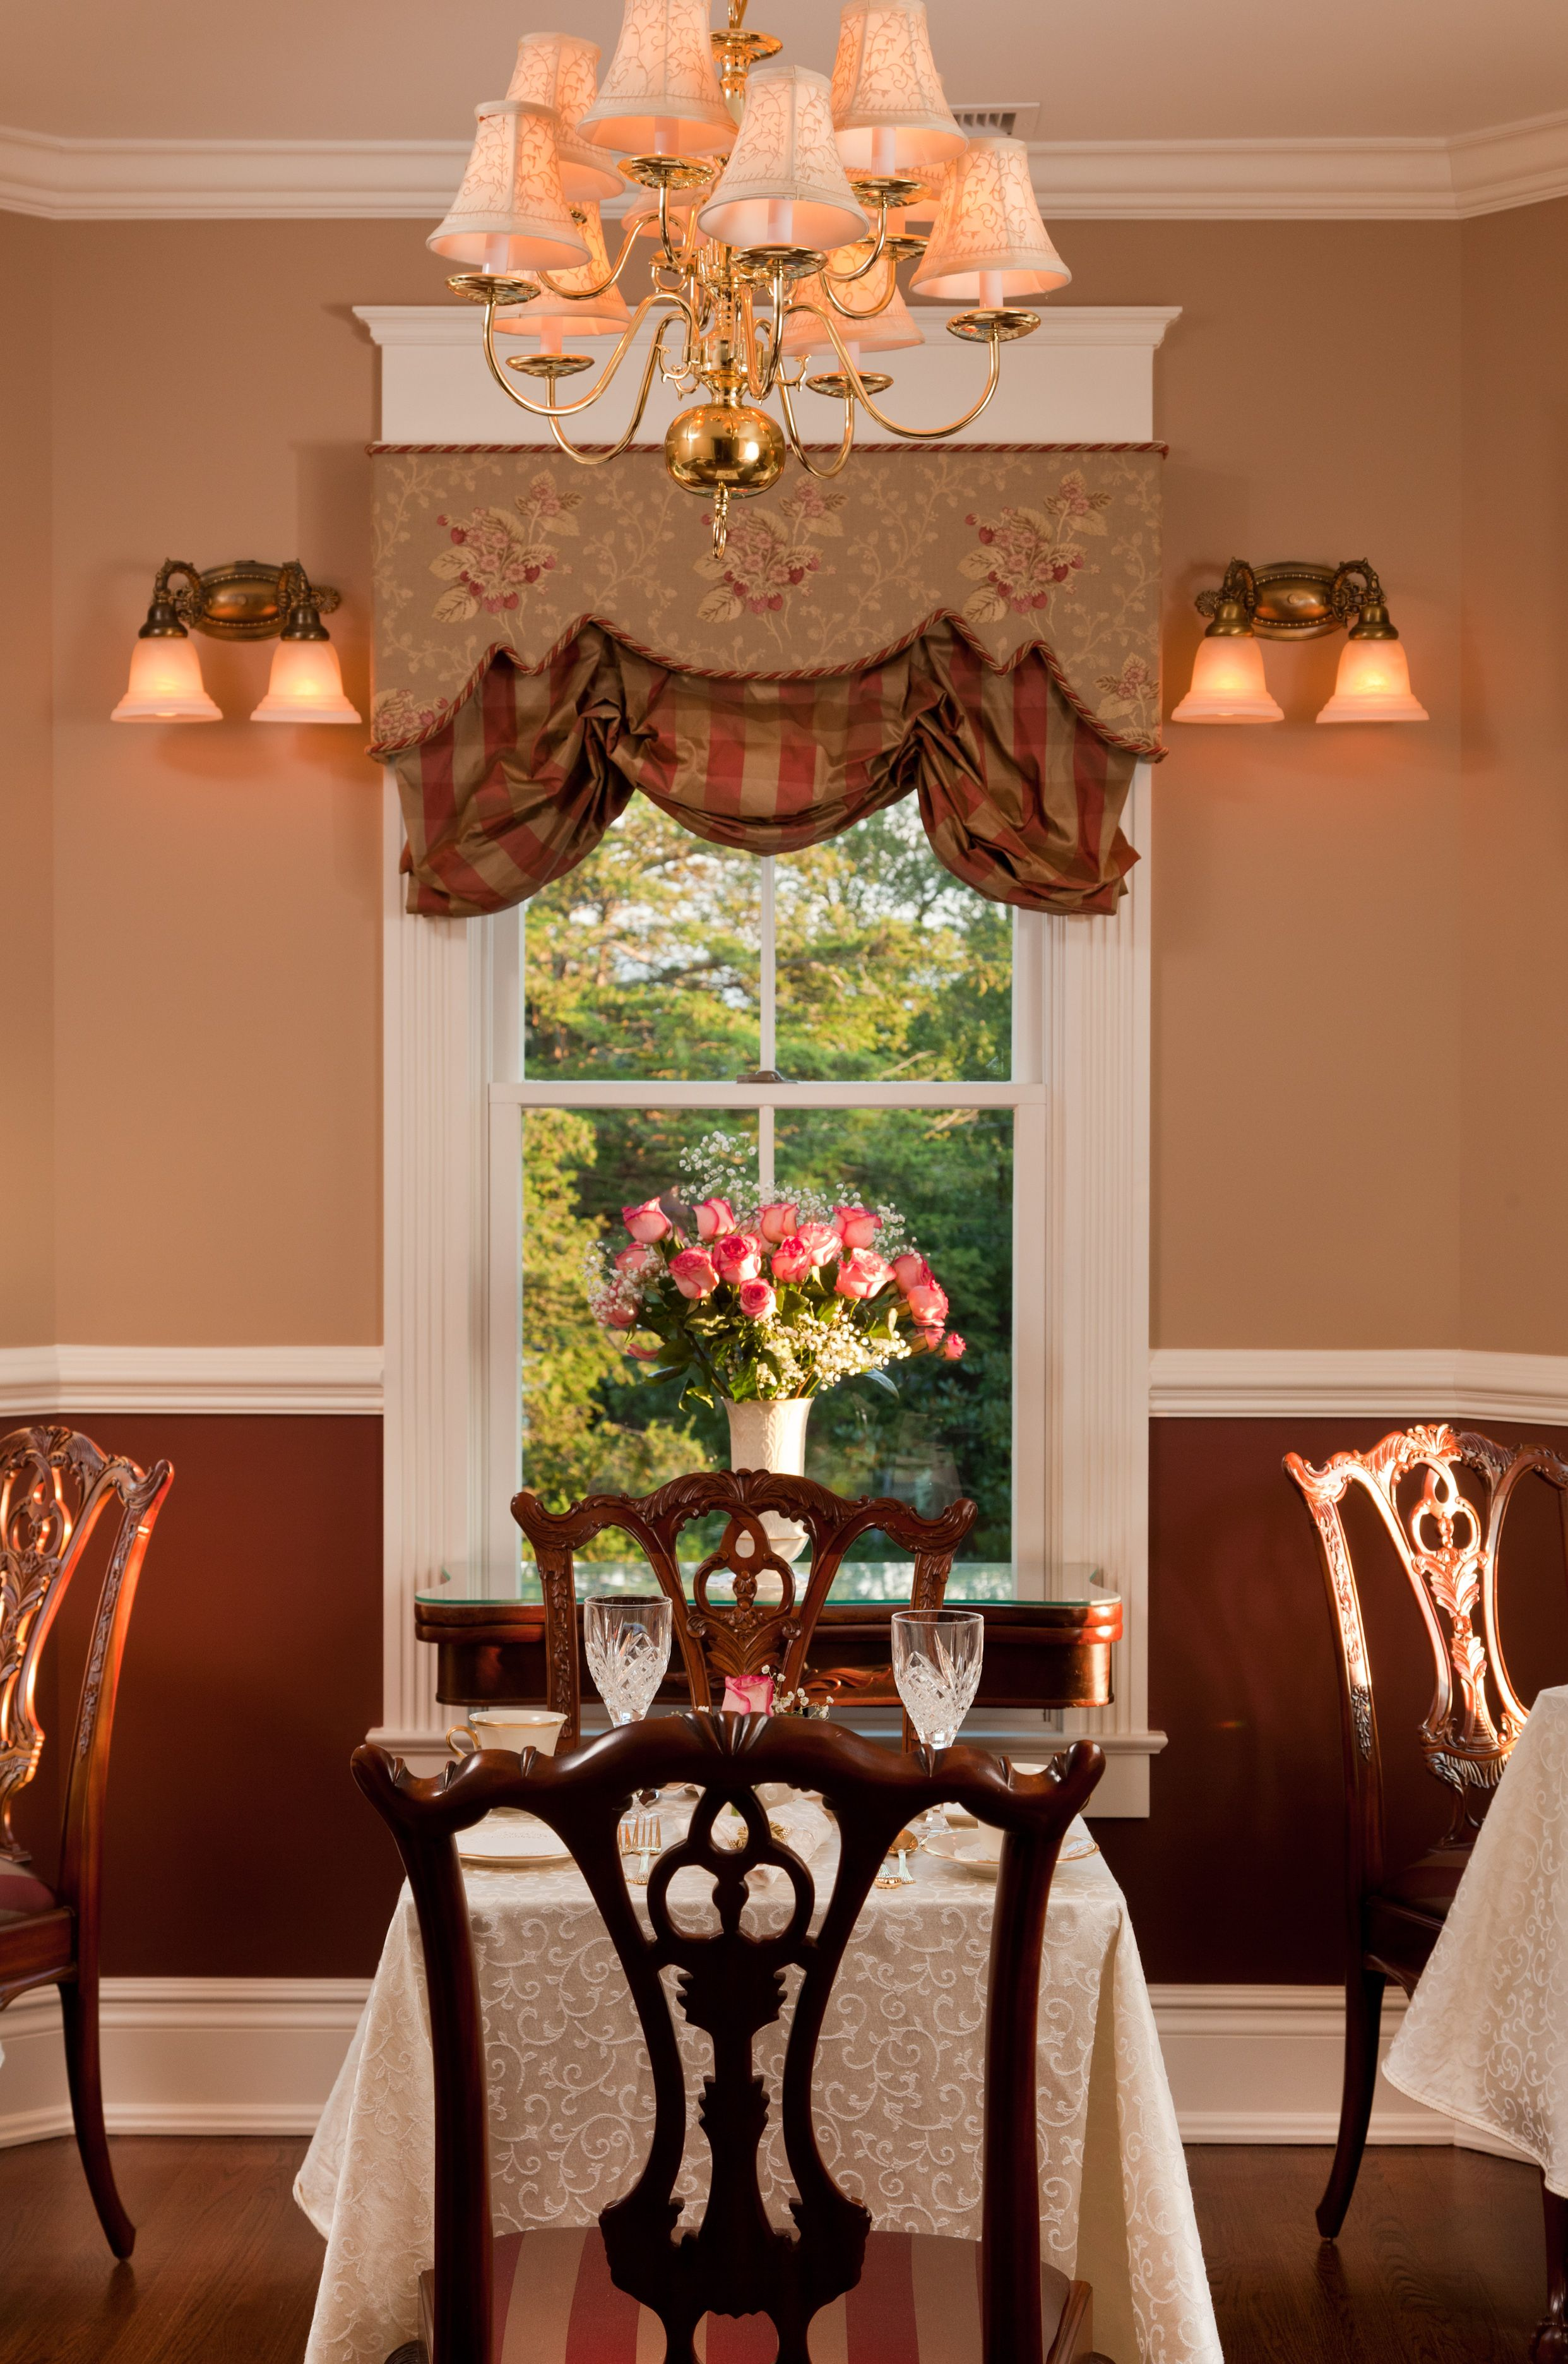 The dining room of The Tower Cottage. Point pleasant